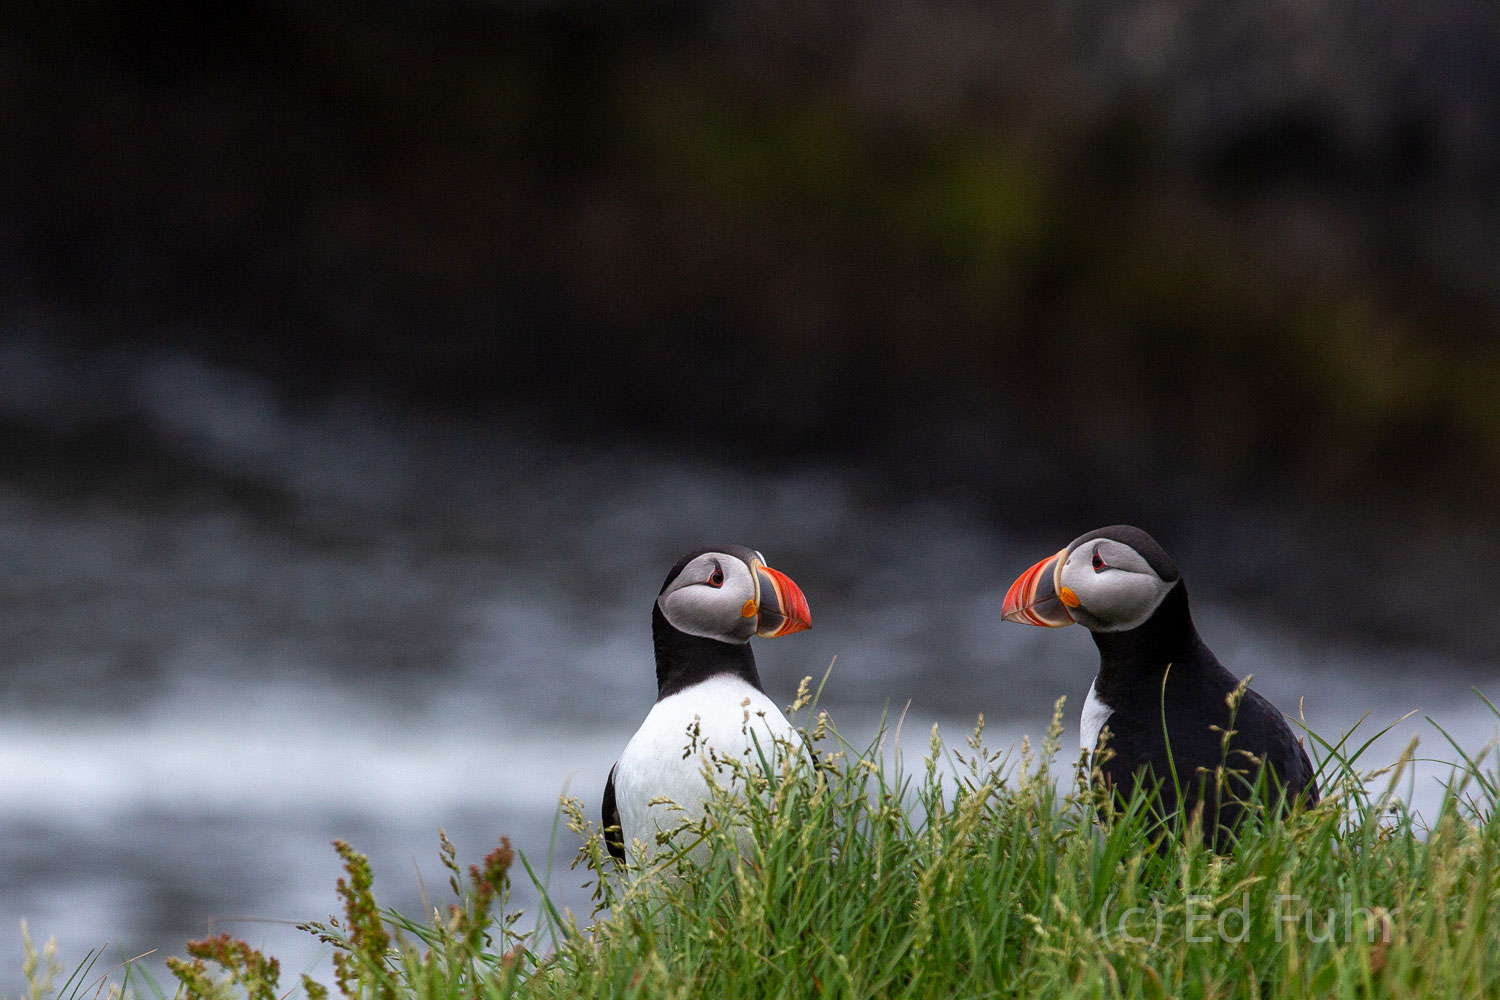 Two puffins exhange wild tales of life on the open ocean.   Puffins mate for life generally and there is much for them to catch...